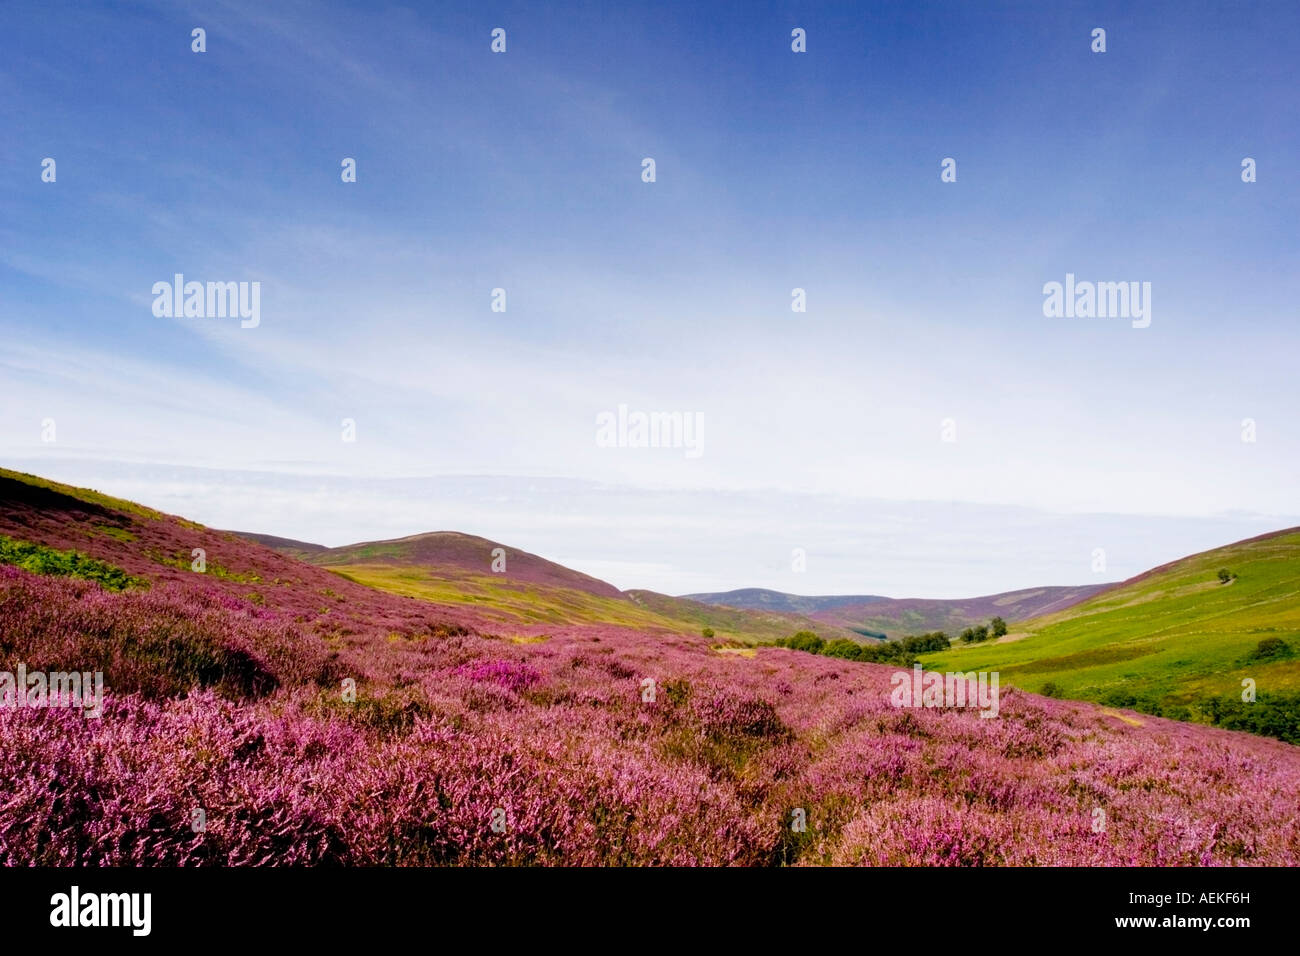 a-view-across-the-heather-clad-hills-of-